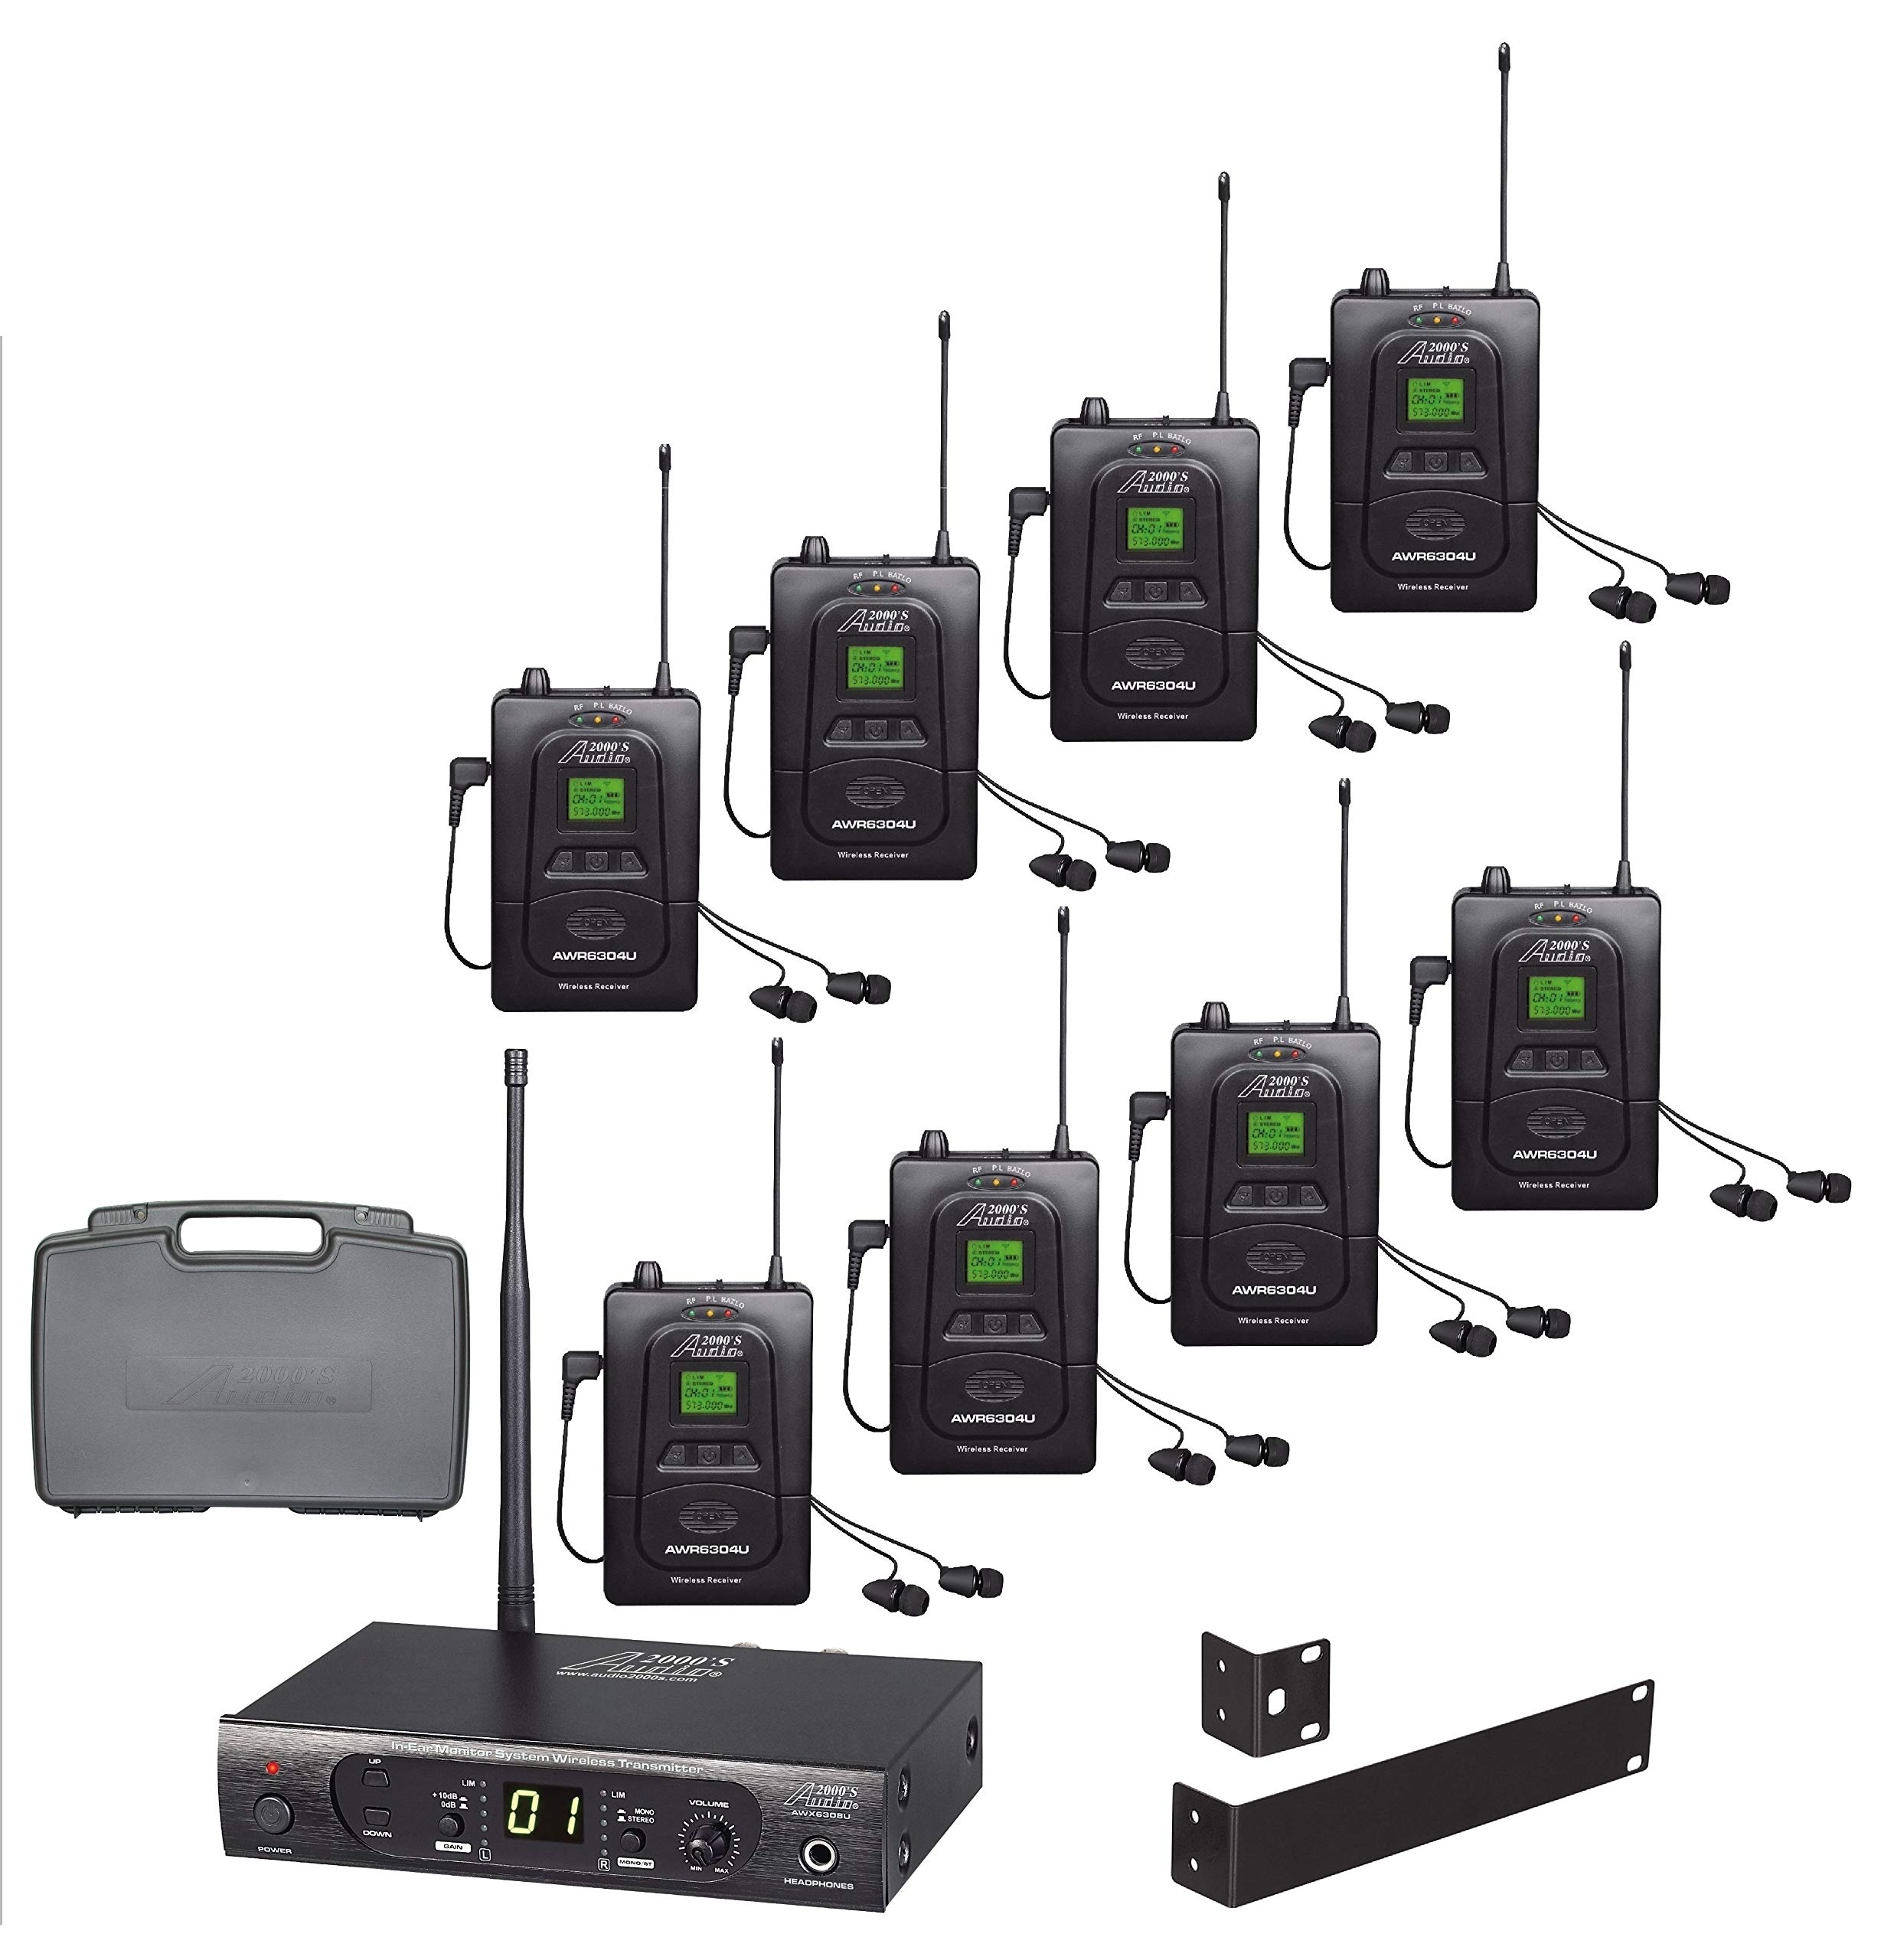 Audio2000'S AWM630CU UHF 100 Selectable Frequency Wireless In-Ear Monitor System with Eight Wireless Receivers and a PVC Carrying Case by Audio 2000S